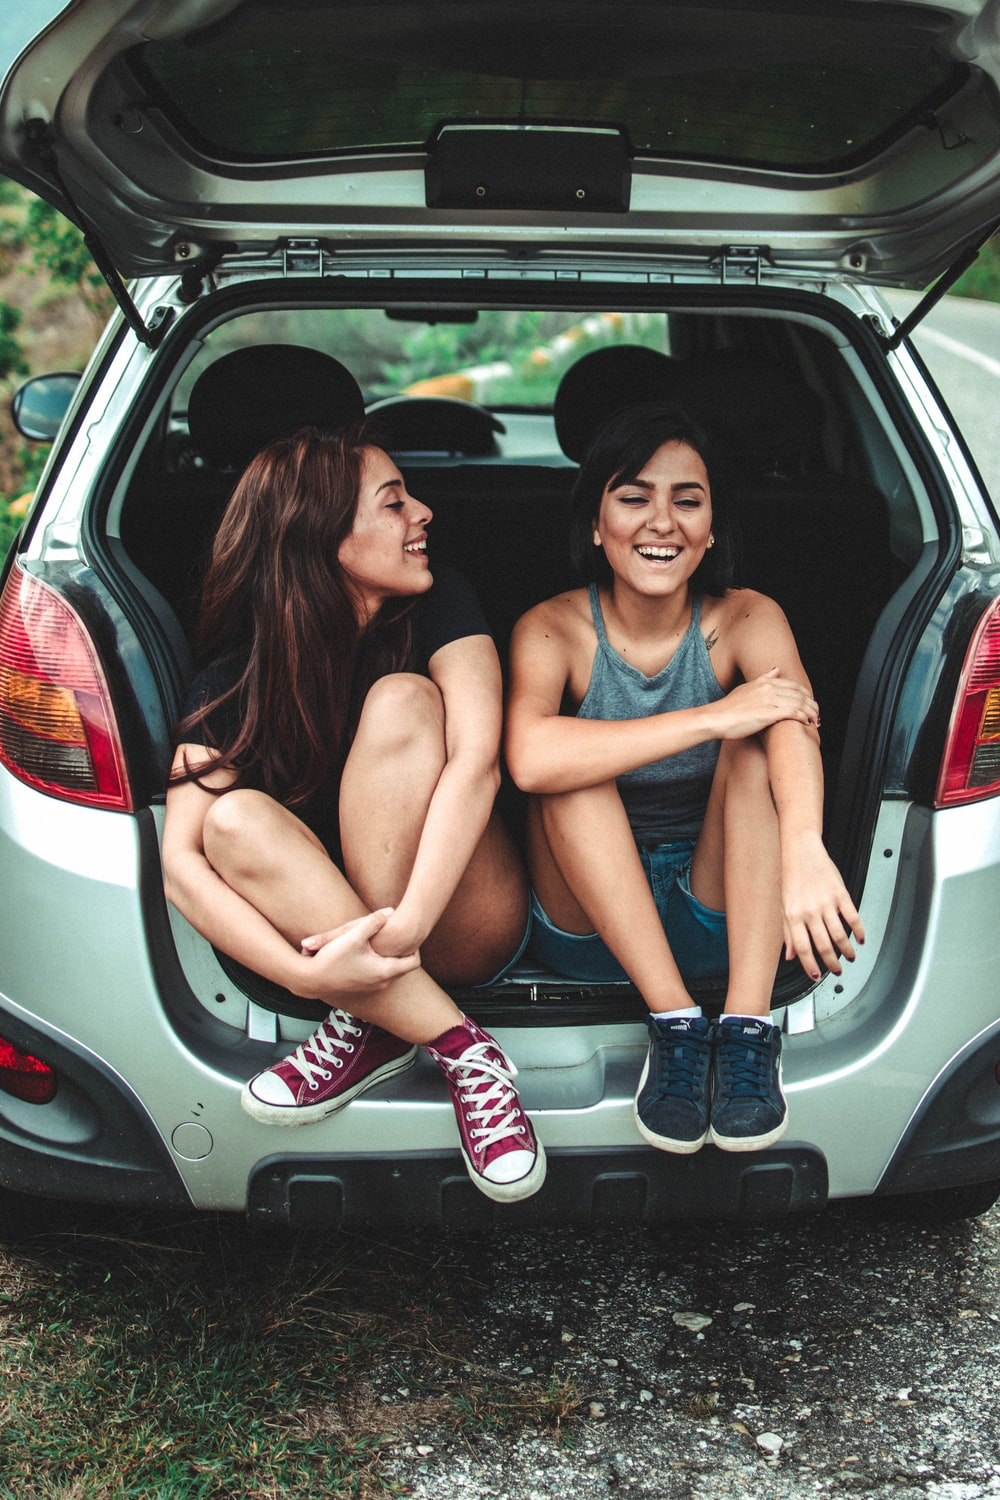 two women sitting at the back of the car